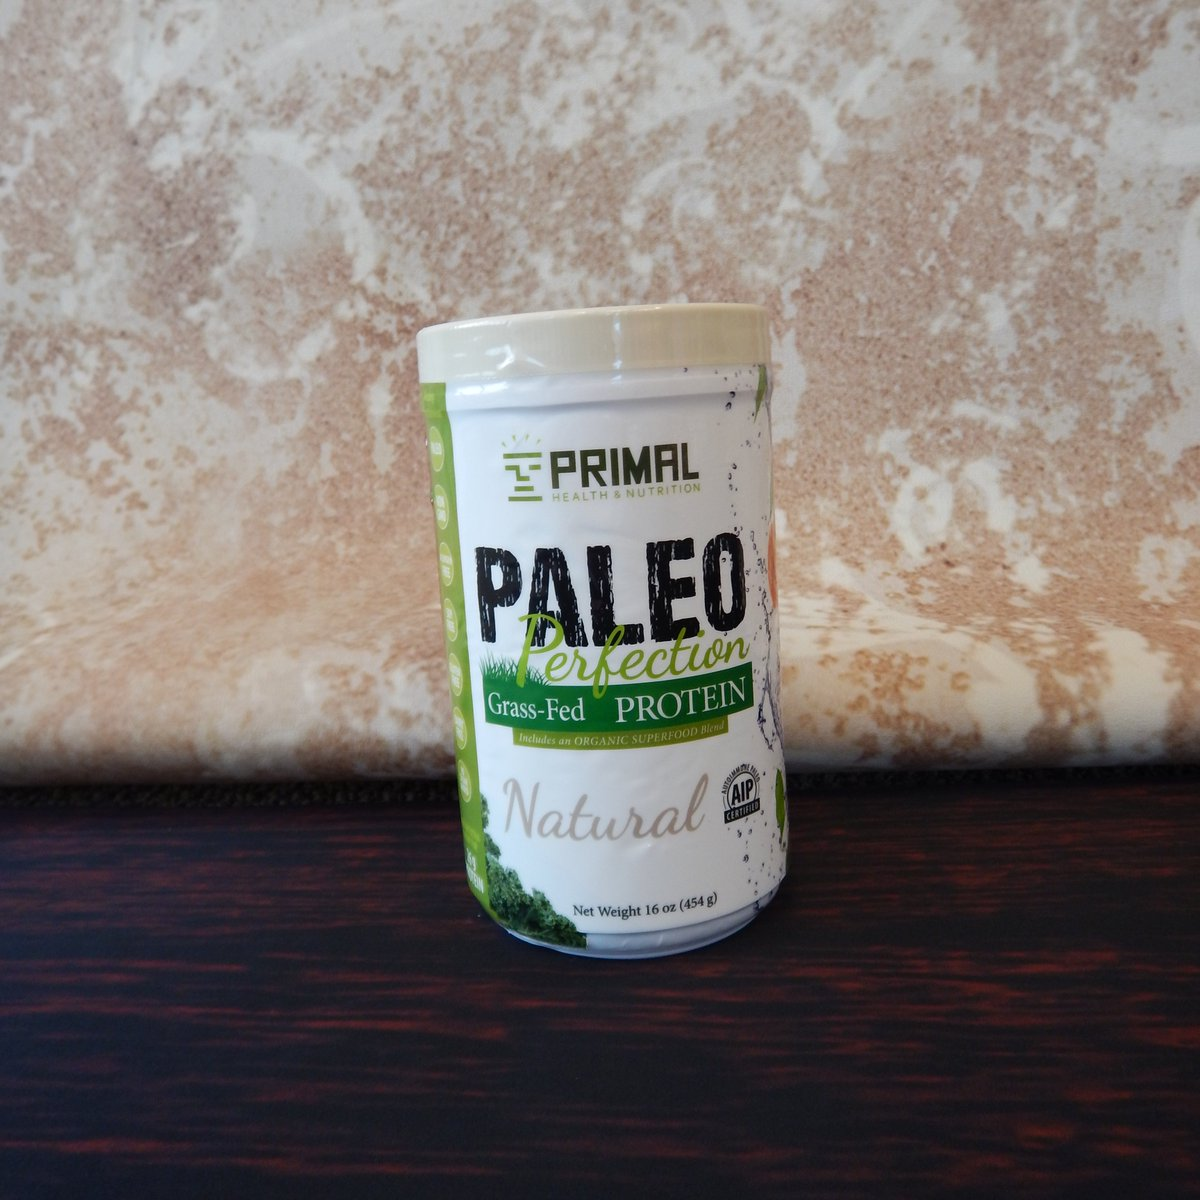 Our #primalhn natural protein is #AIP compliant! #paleo #protein #yumm #autoimmuneprotocol #healwithfood #health #fit #exercise #crossfit<br>http://pic.twitter.com/XFOePLUAQS